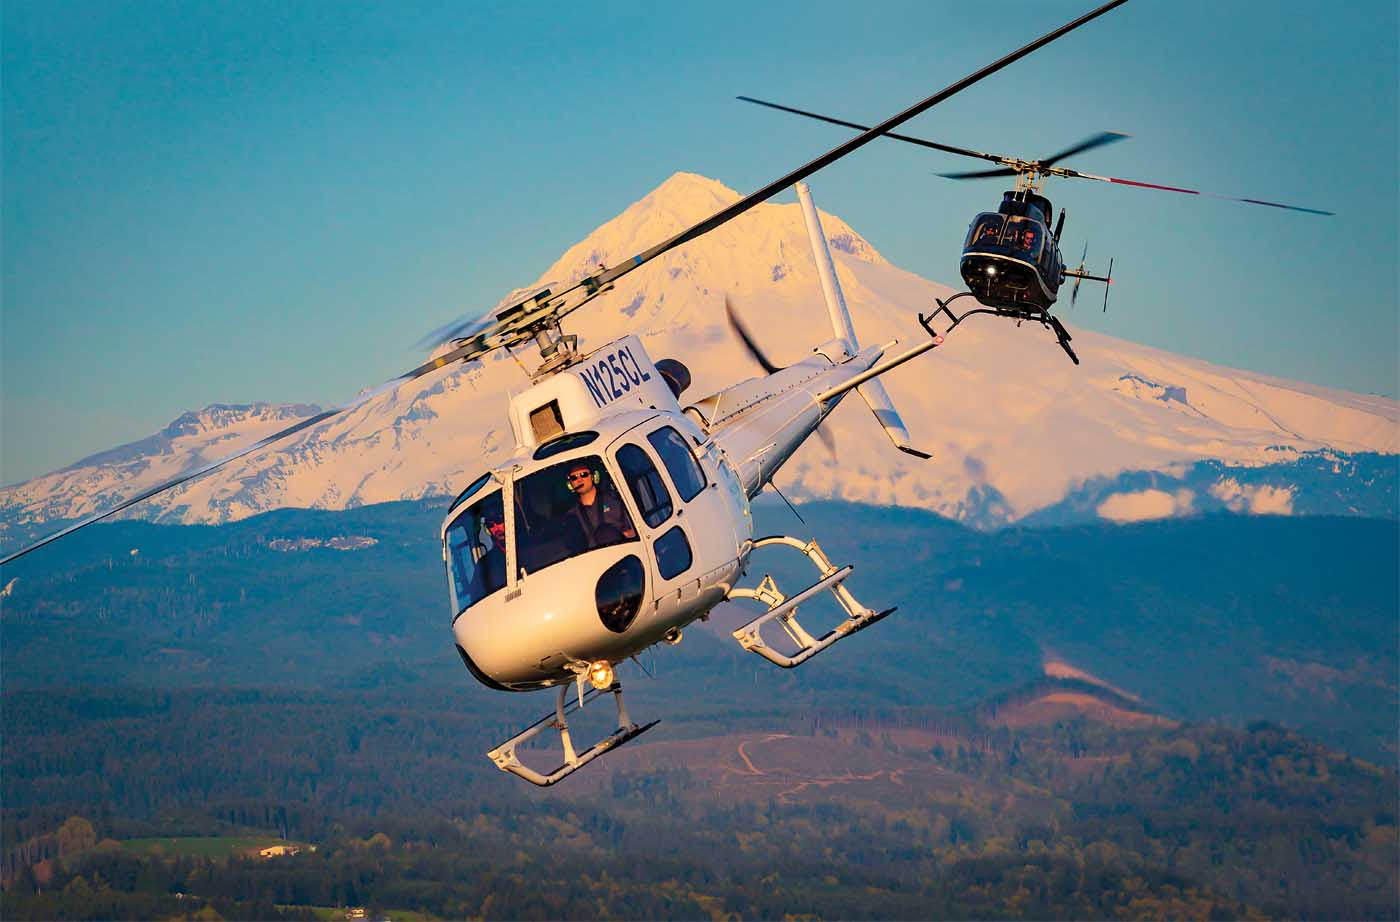 An Airbus H125 and Bell 407 operated by Hillsboro Aviation fly in front of Mount Hood in northern Oregon. Now celebrating 38 years in operation, the company continues to evolve alongside the industries it serves. Heath Moffatt Photo